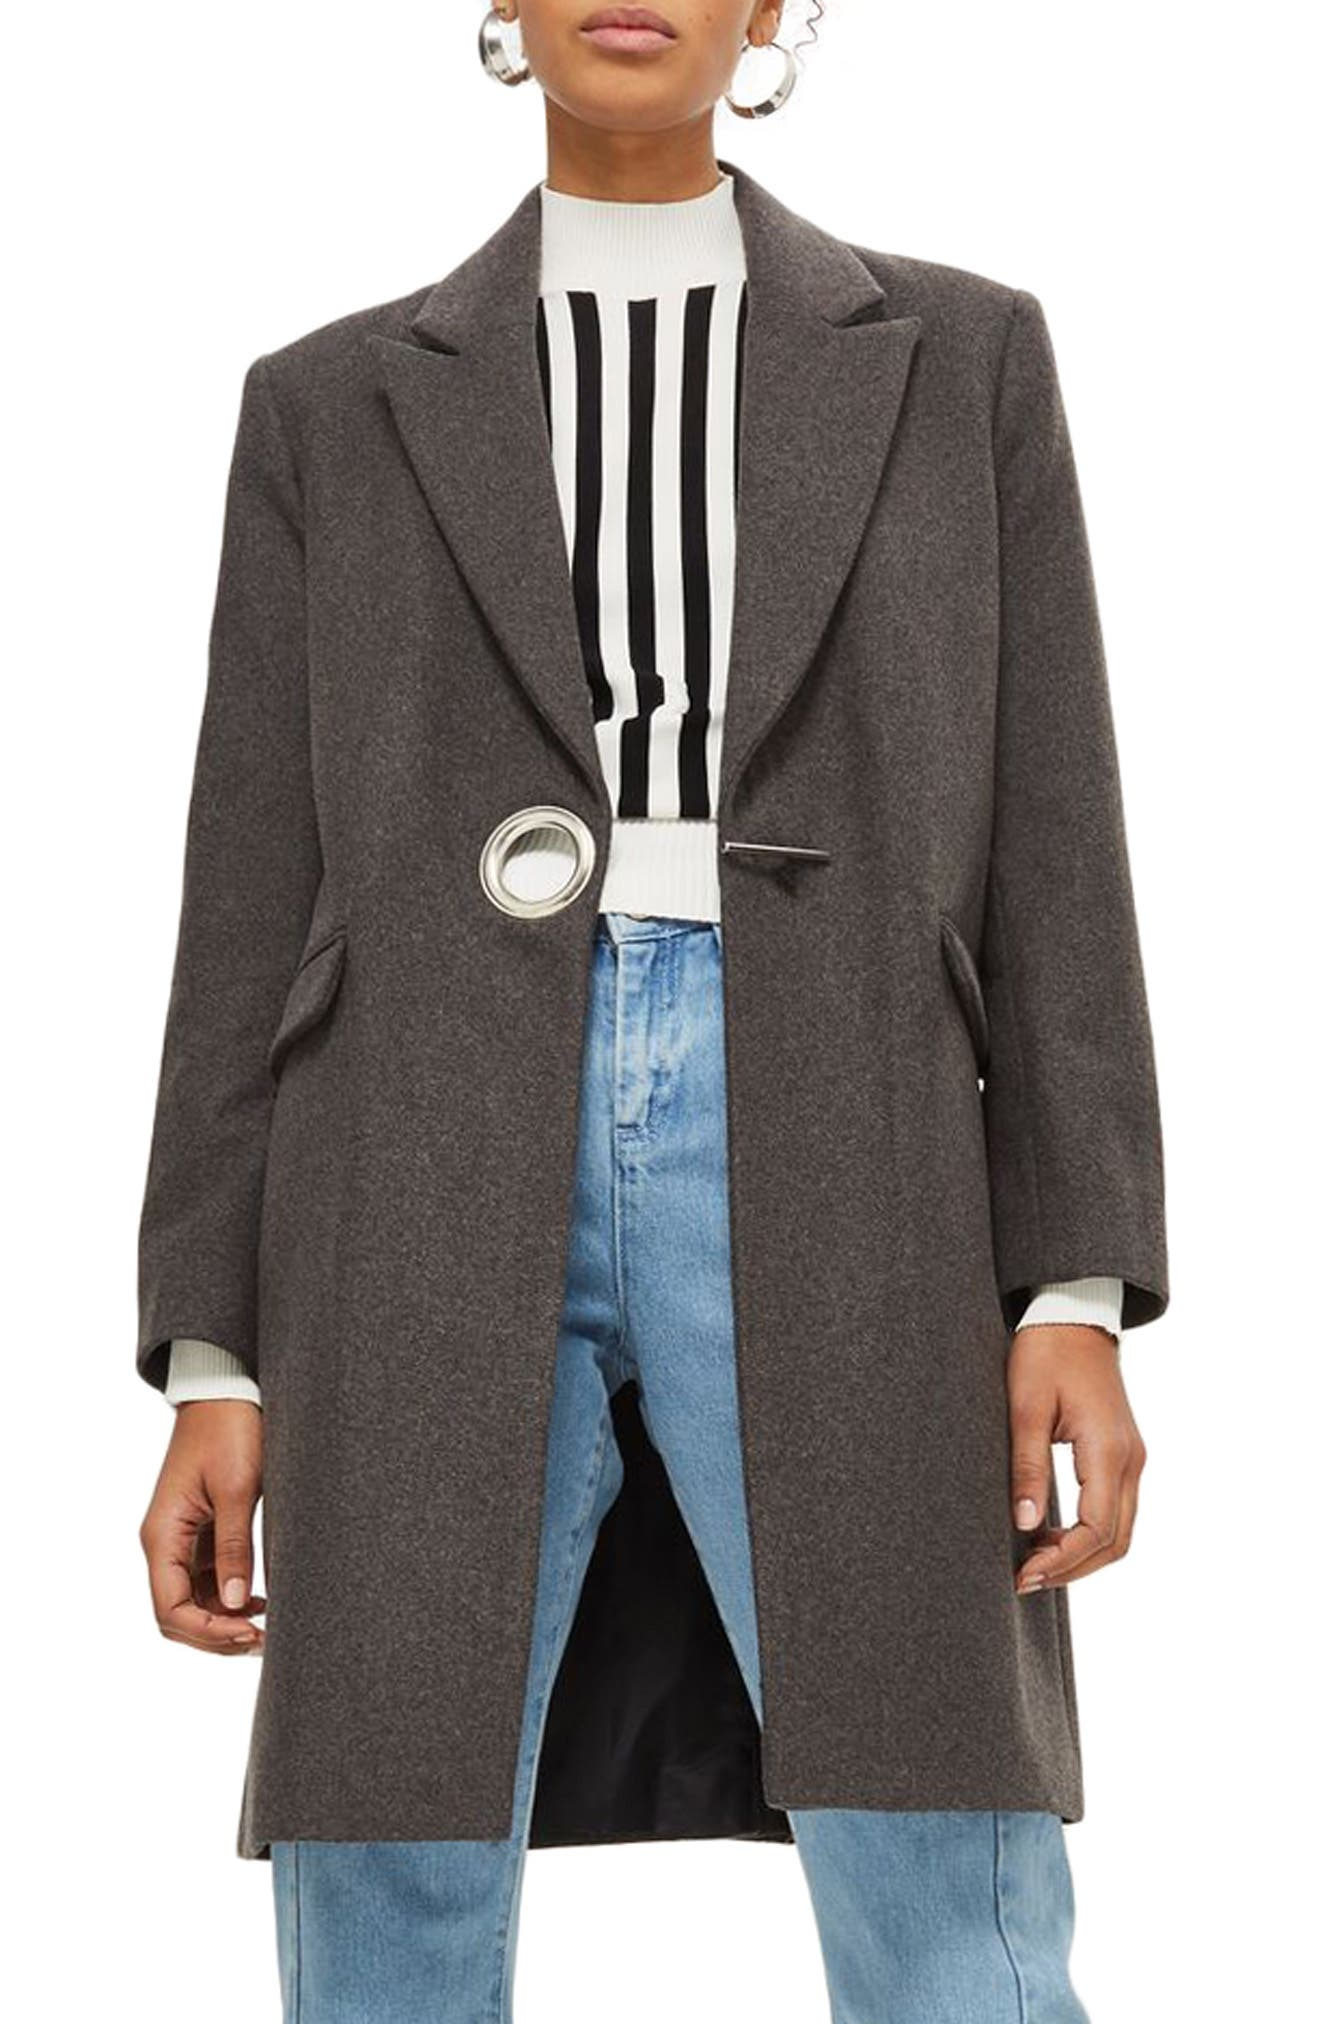 Peak Lapel Coat,                             Main thumbnail 1, color,                             Grey